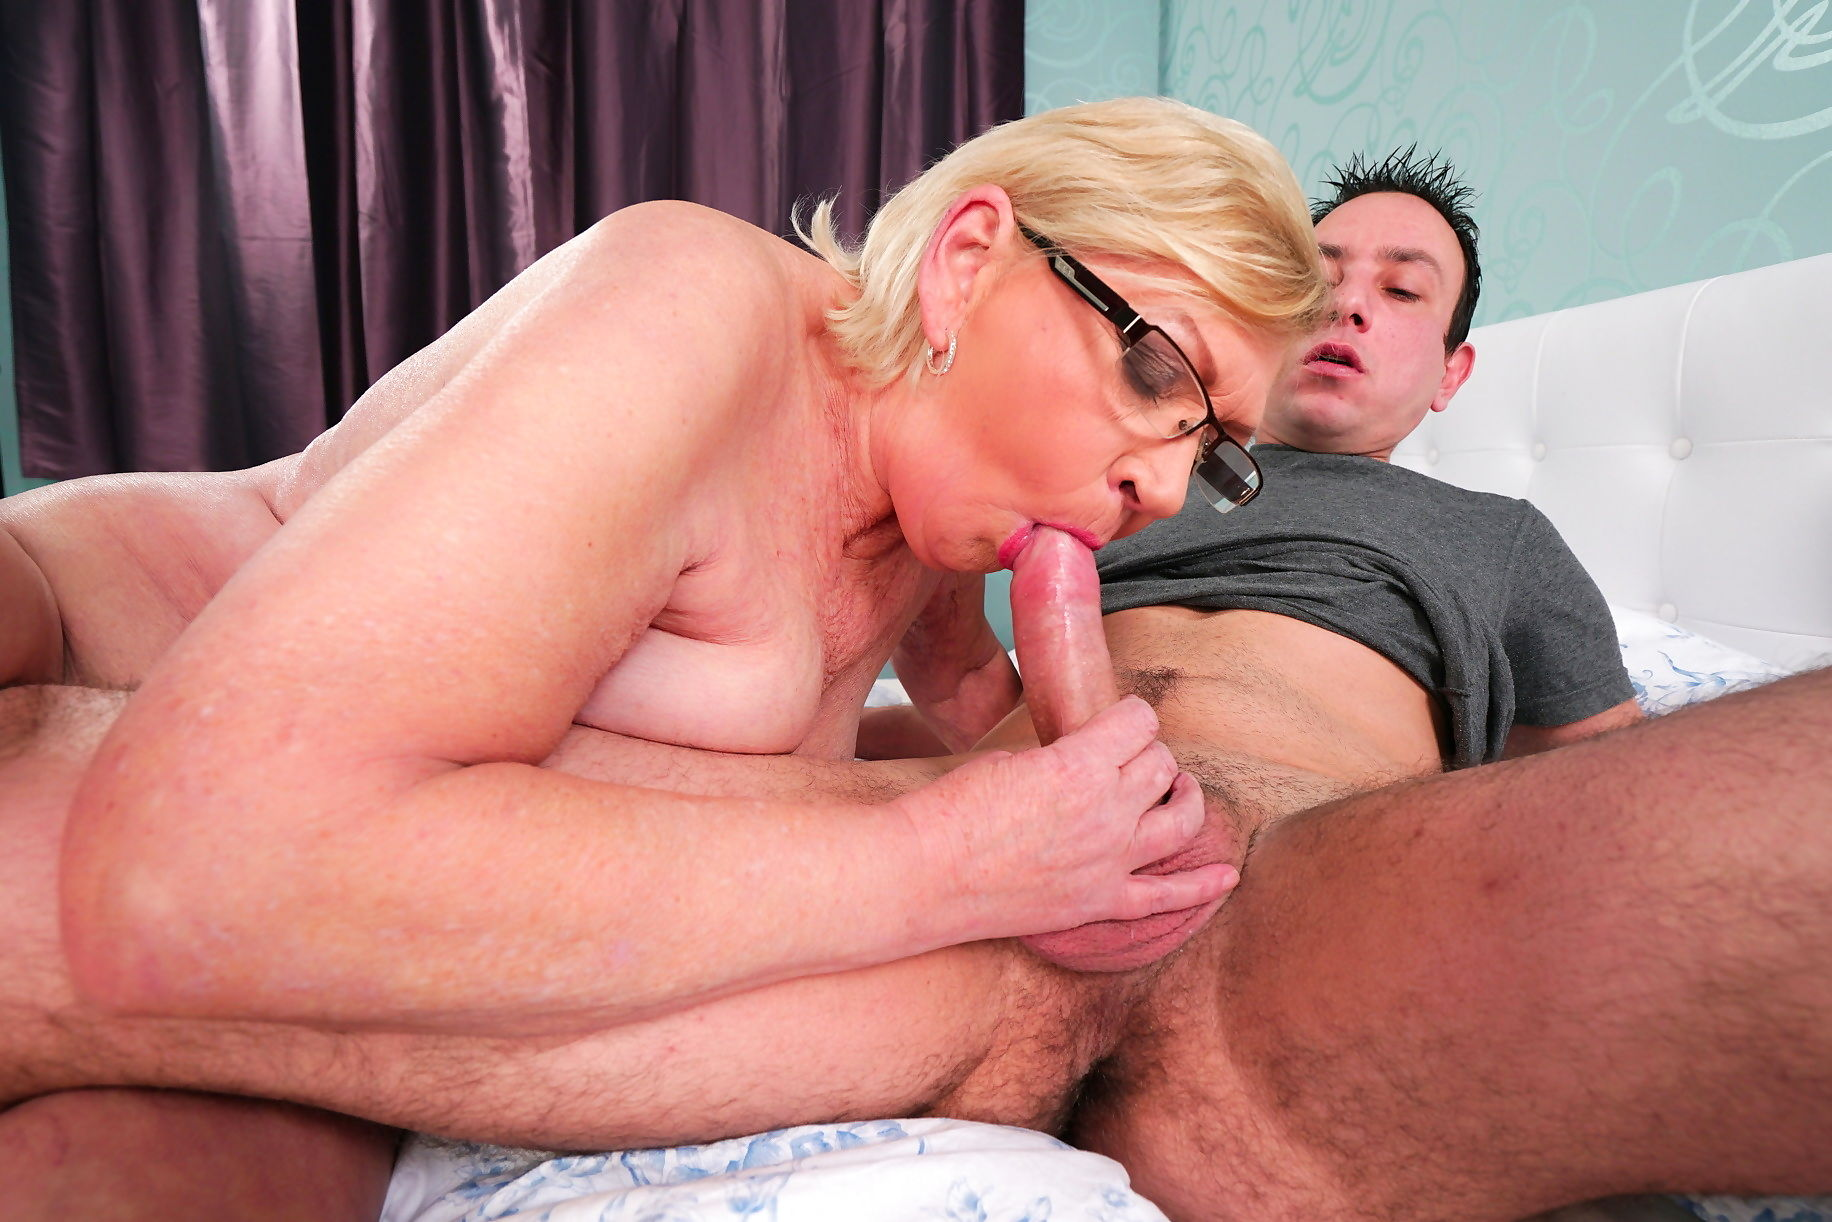 A young man fucks his granny - part 2931